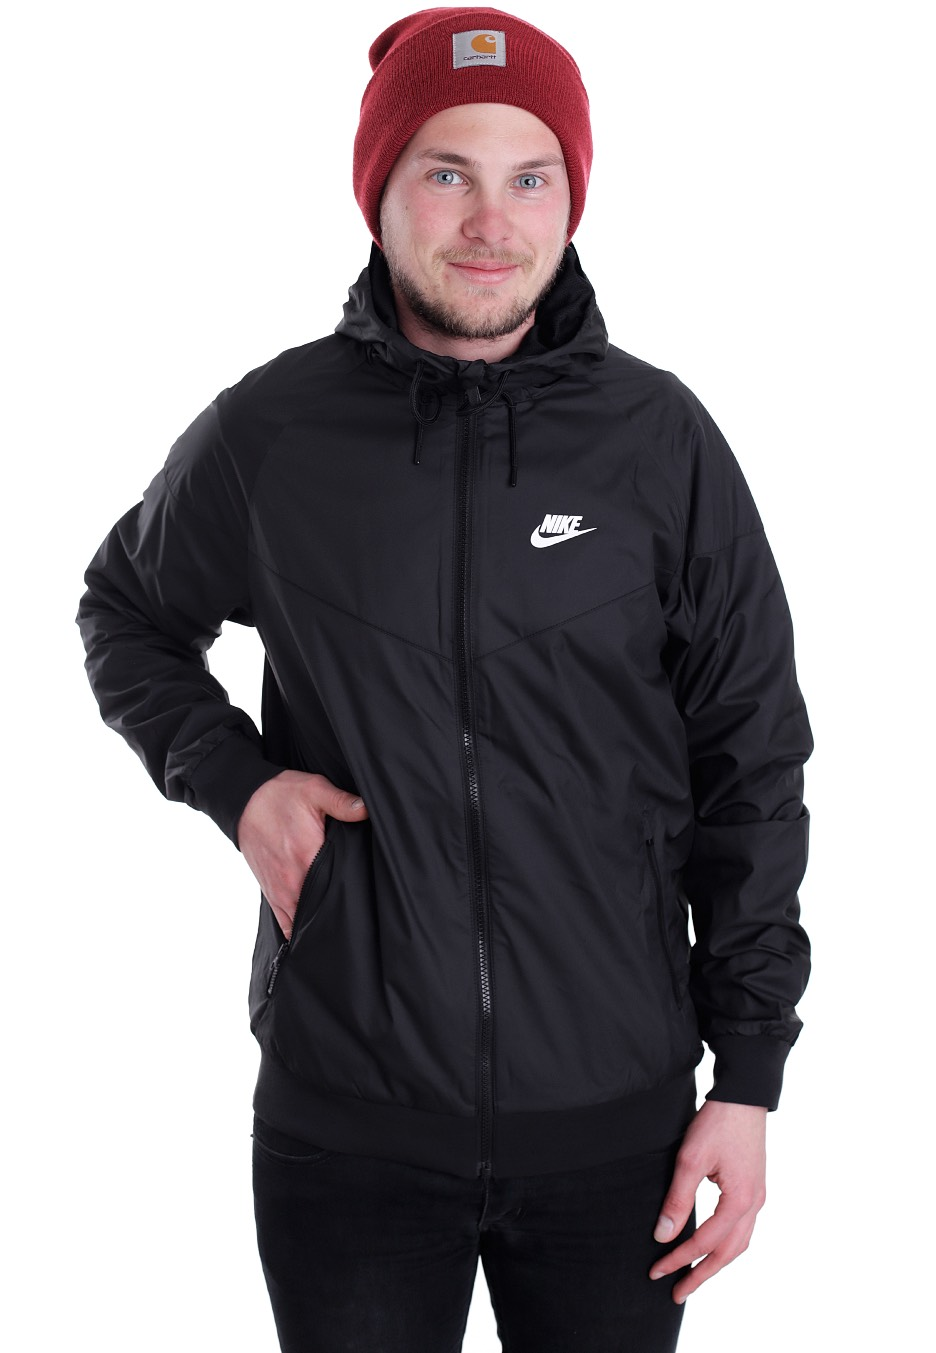 world-wide renown good reputation exquisite style Nike - Windrunner Black/Black/Black/White - Jacket